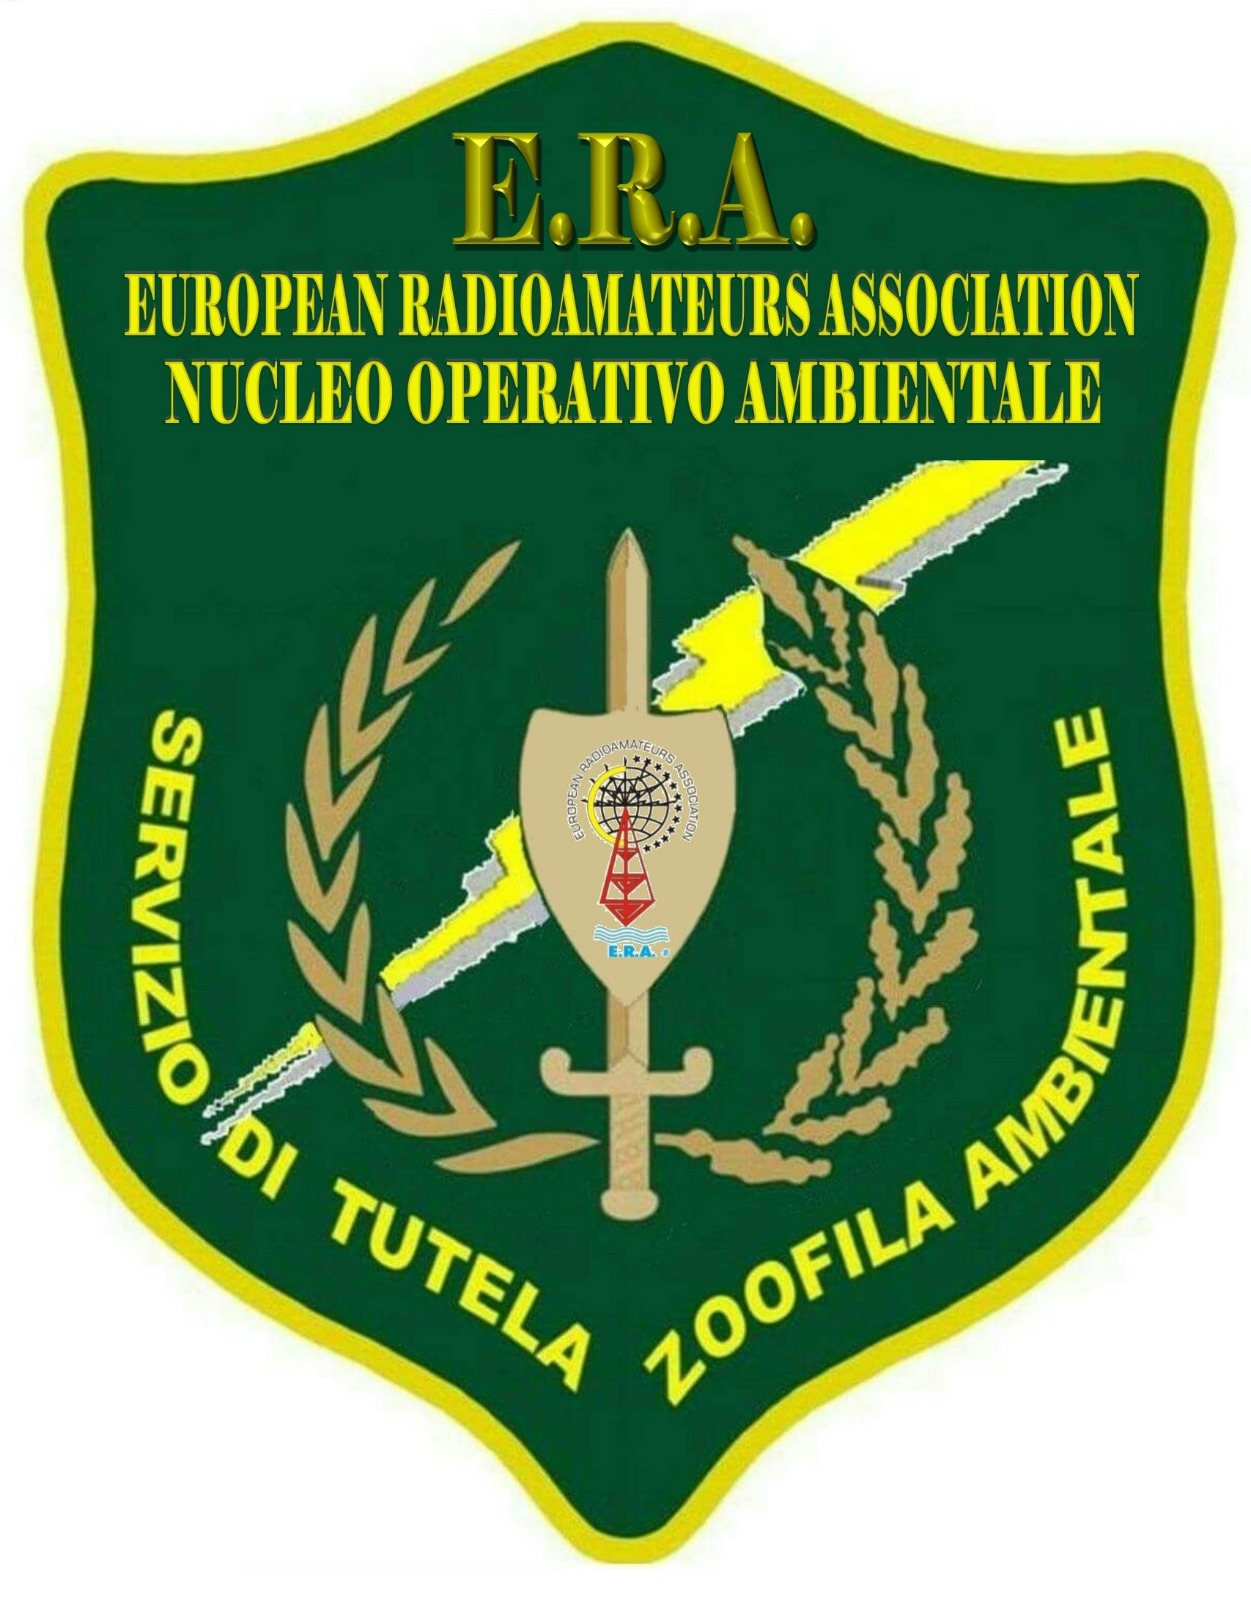 Nucleo Operativo Ambientale